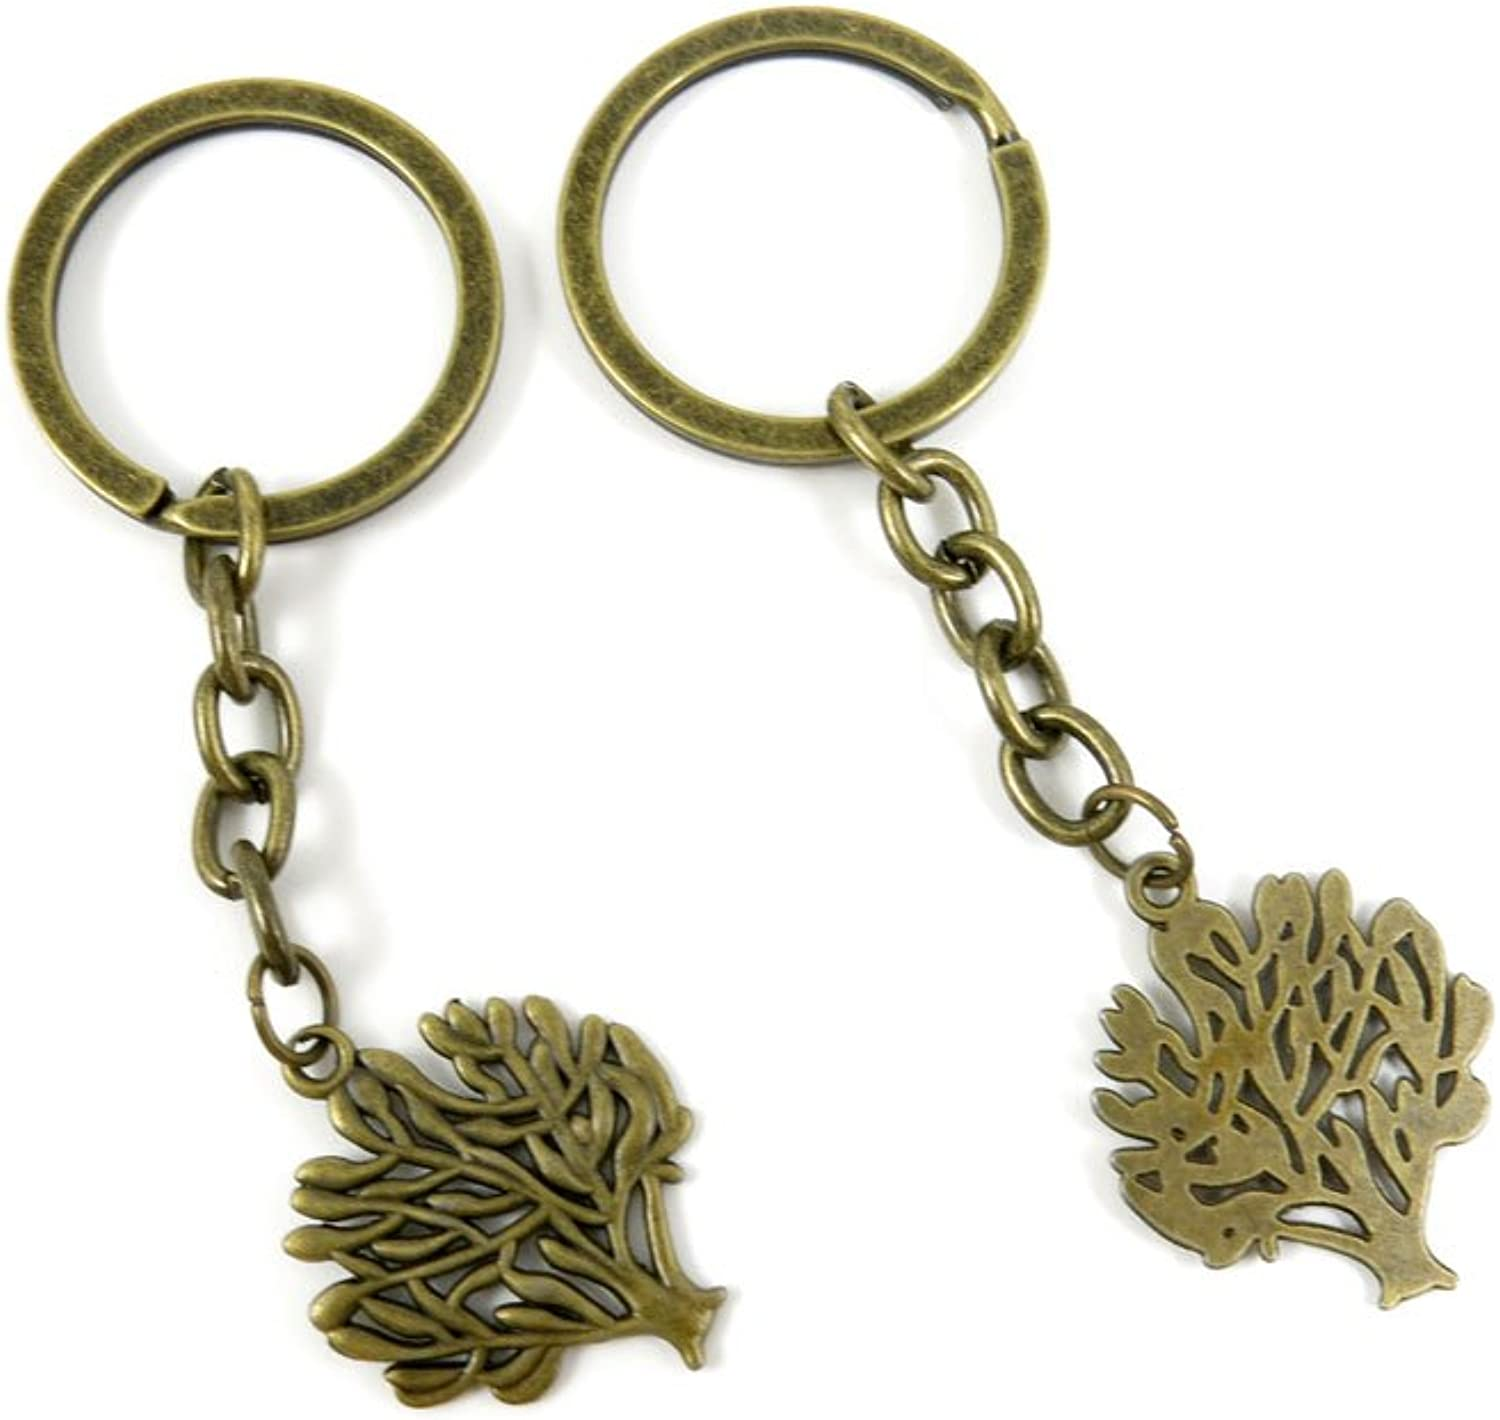 210 Pieces Fashion Jewelry Keyring Keychain Door Car Key Tag Ring Chain Supplier Supply Wholesale Bulk Lots Q3FR3 Life String Tree Oak